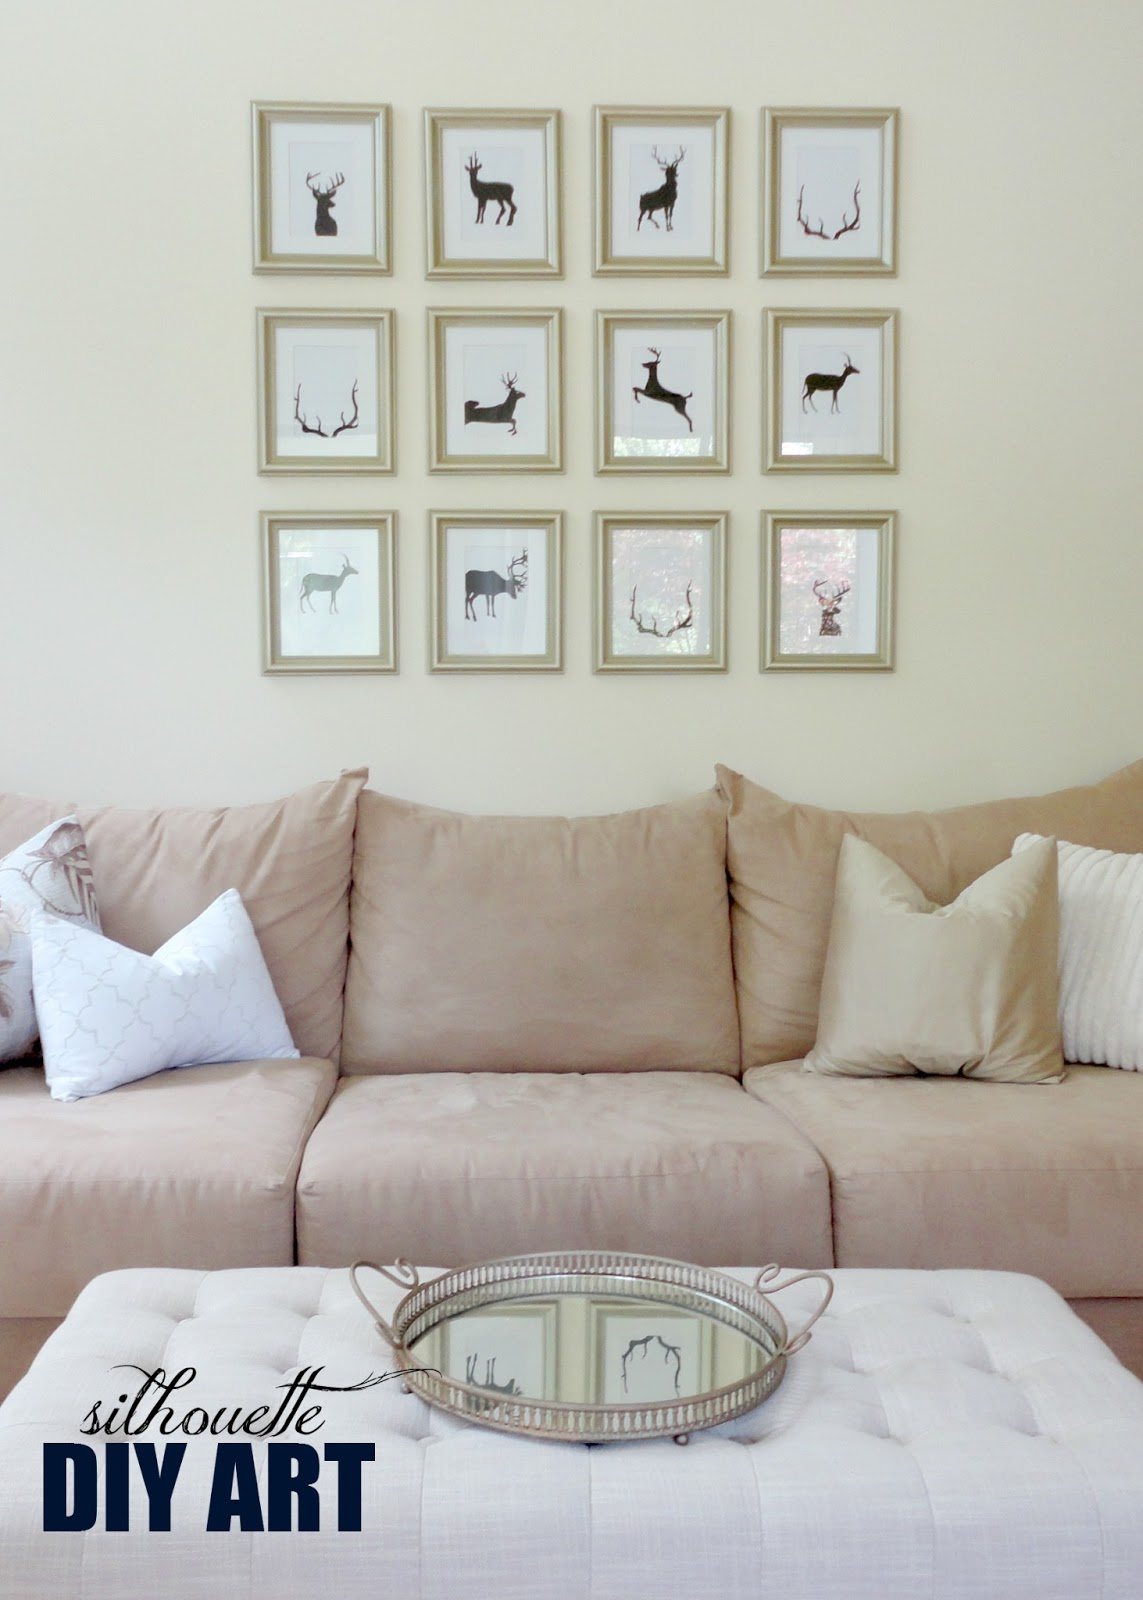 10 DIY Art Ideas  Easy Ways to Decorate Your Walls LiveLoveDIY